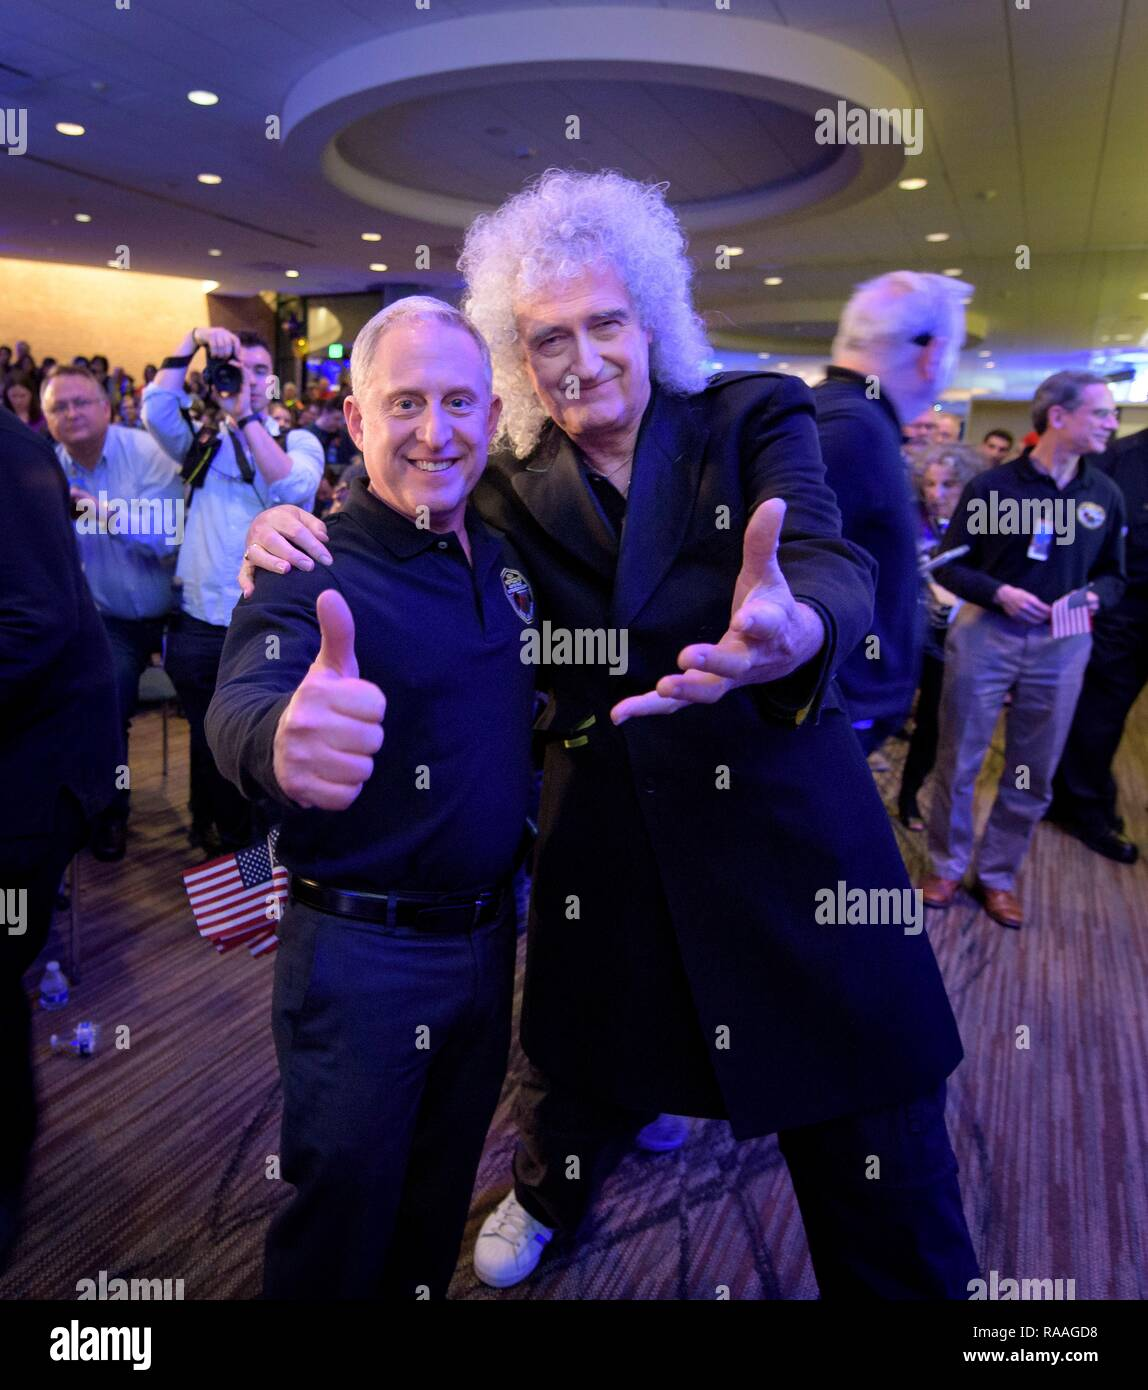 Brian May, lead guitarist of the rock band Queen and astrophysicist, right, poses with New Horizons principal investigator Alan Stern of the Southwest Research Institute as they wait for confirmation of the flyby of Ultima Thule by the New Horizon spacecraft at Johns Hopkins University Applied Physics Laboratory December 31, 2018 in Laurel, Maryland. The flyby by the space probe occurred 6.5bn km (4bn miles) away, making it the most distant ever exploration of an object in our Solar System. - Stock Image